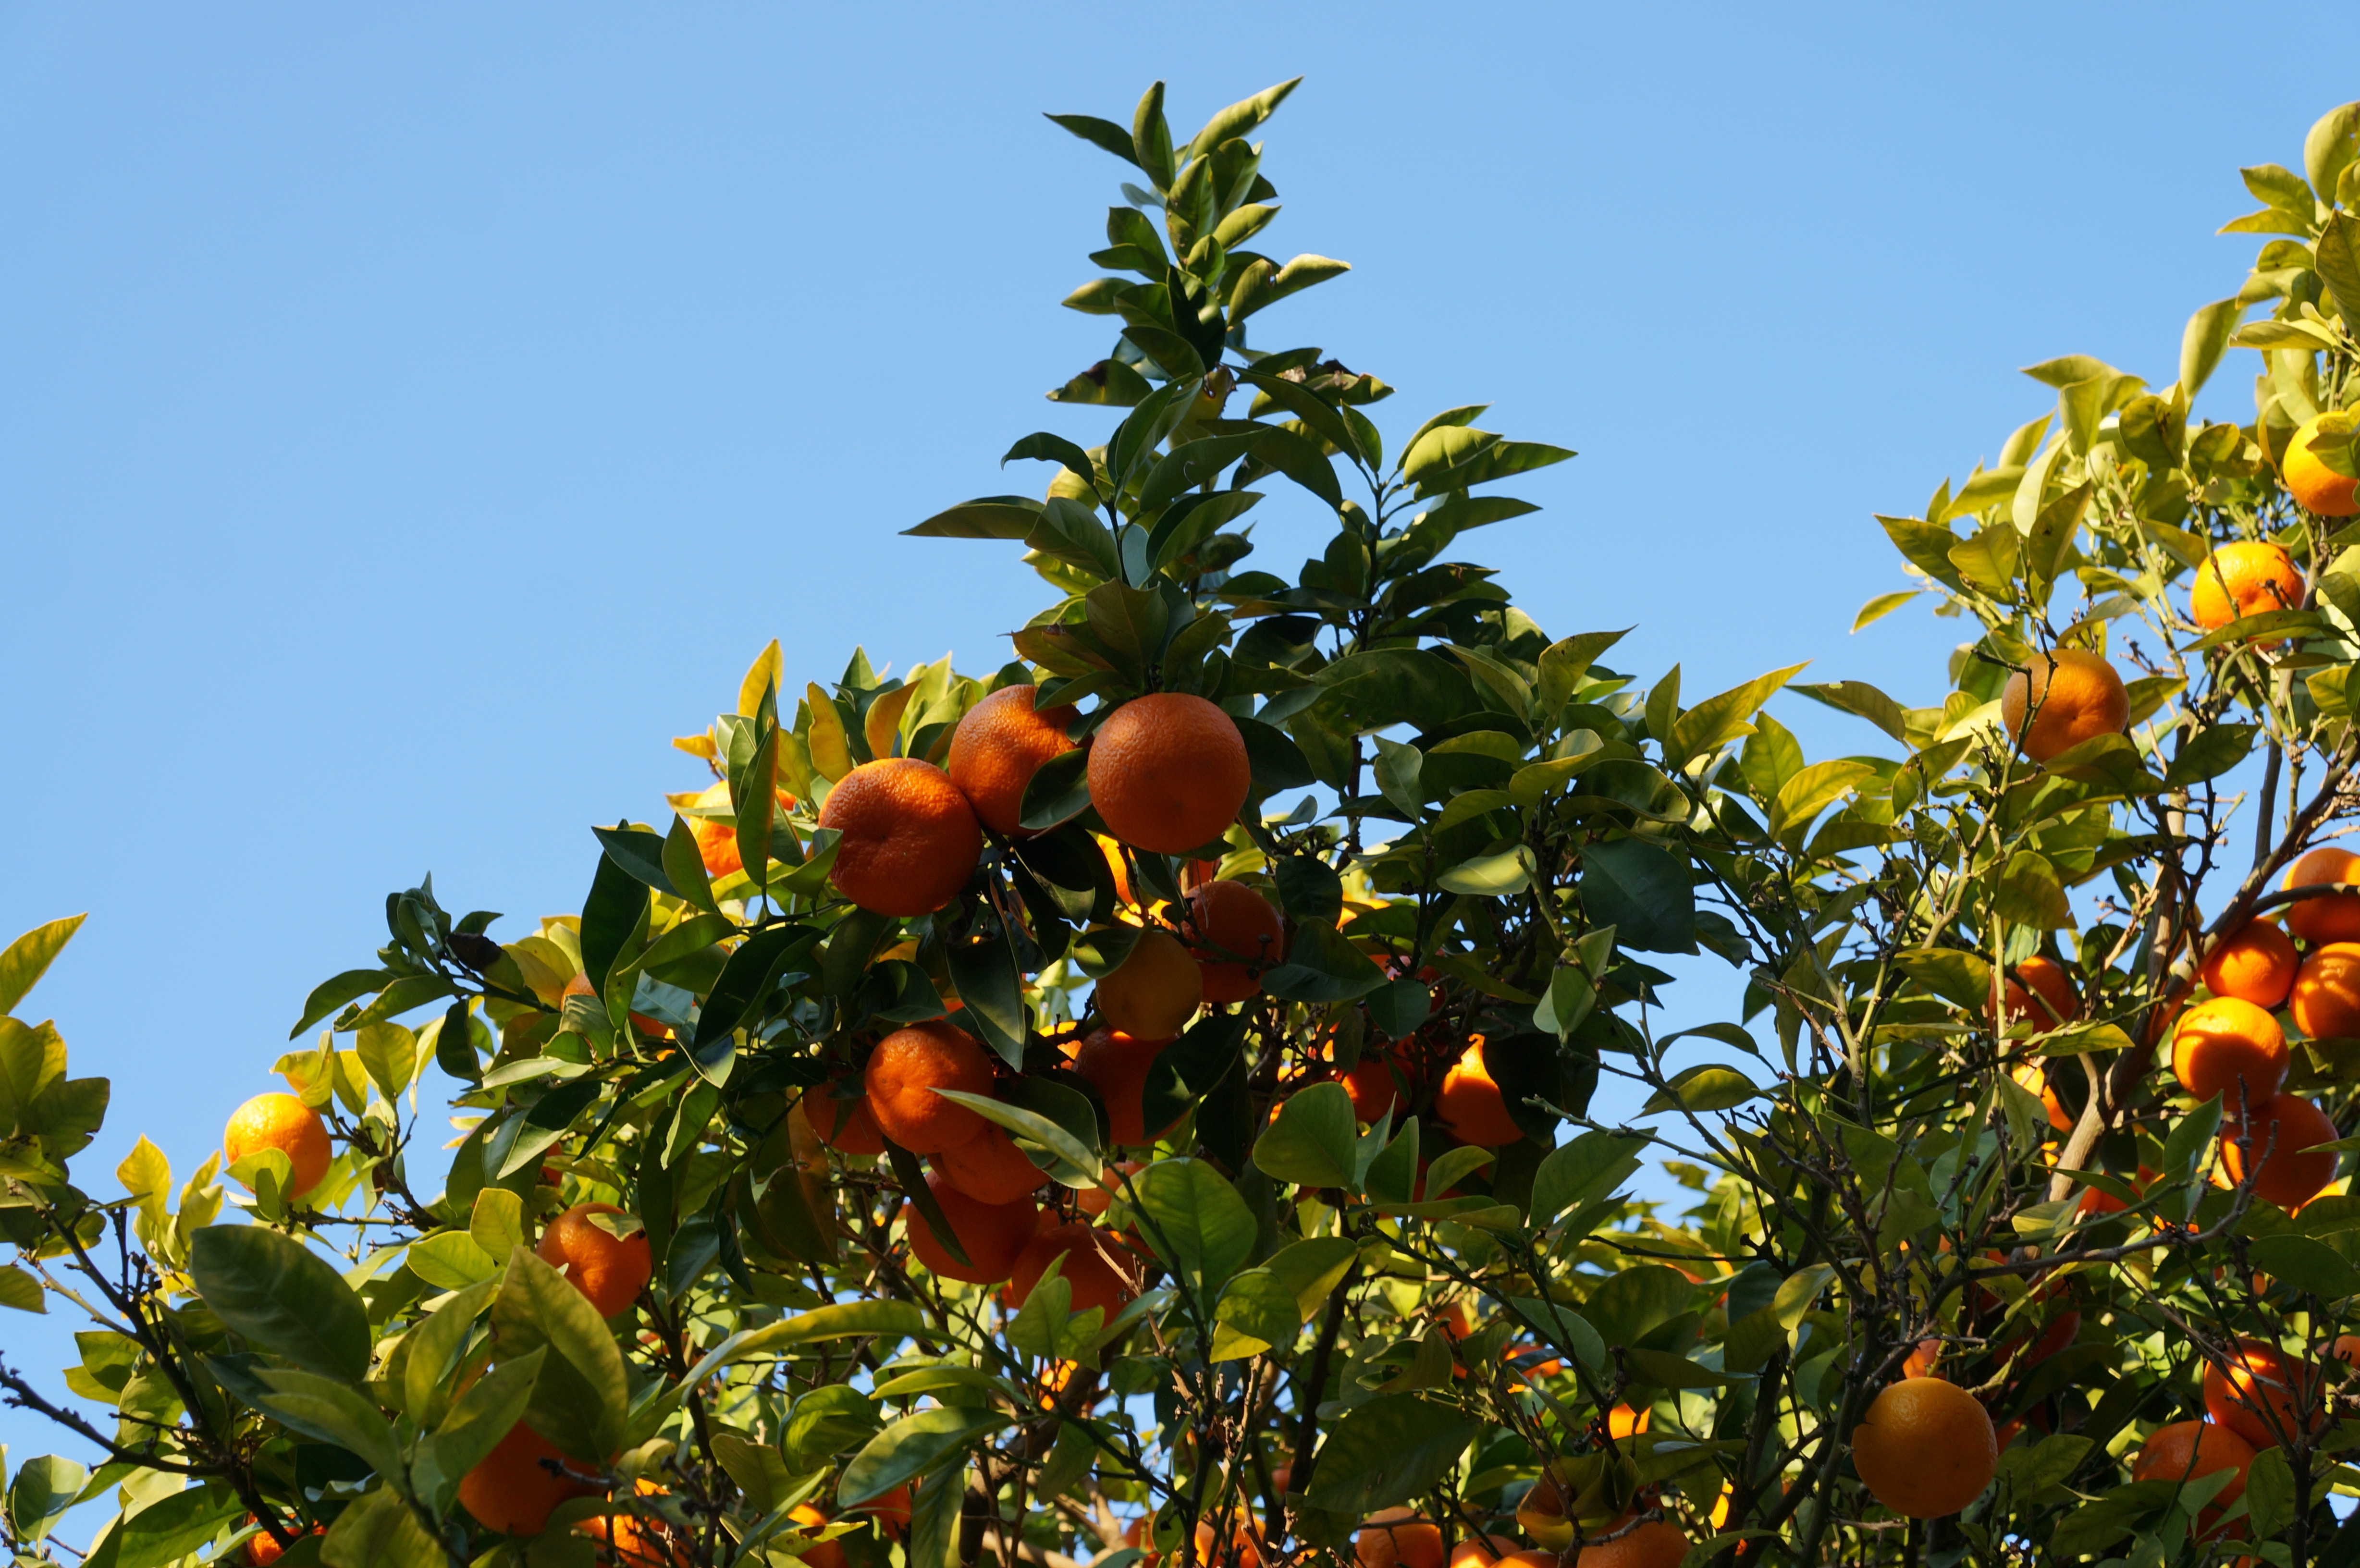 Oranges in the summer